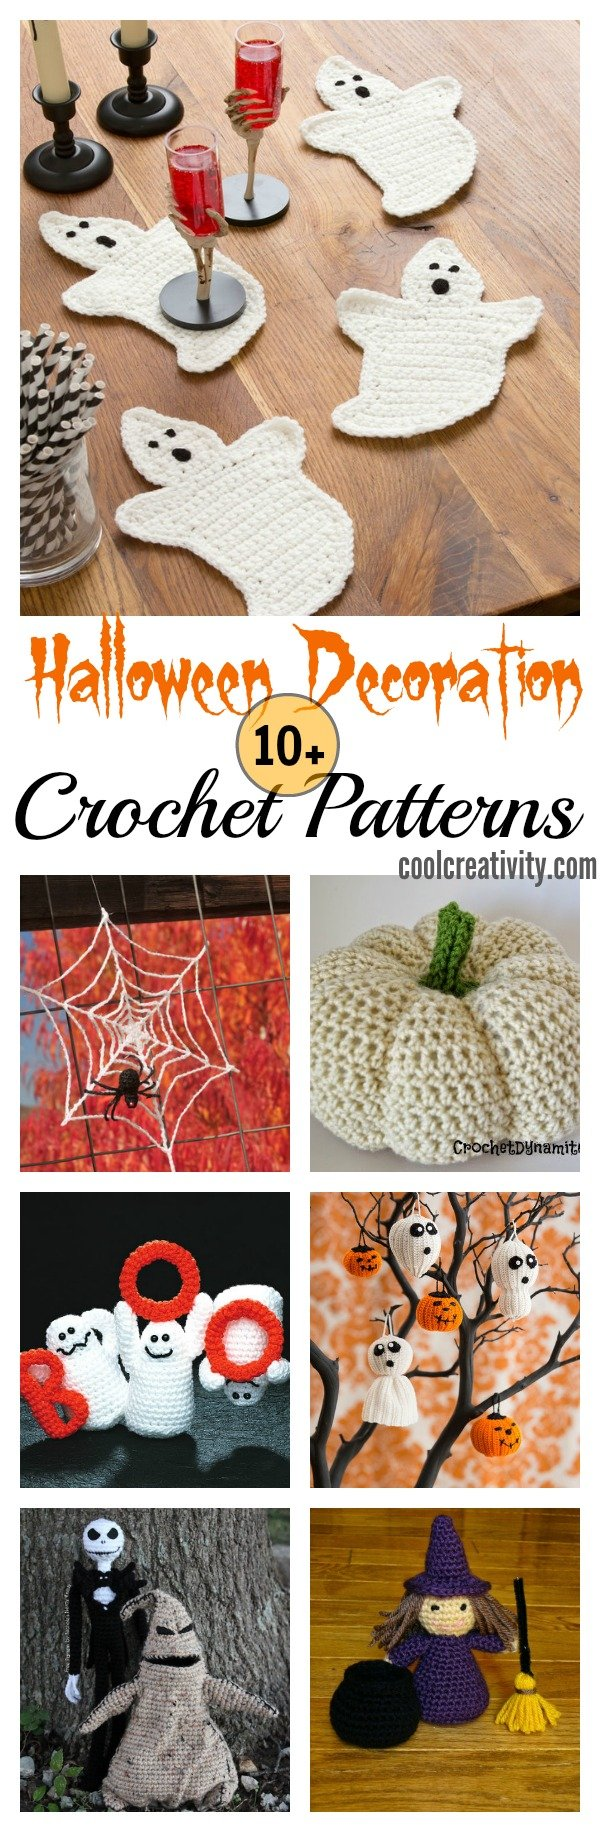 Halloween Decoration Crochet Patterns